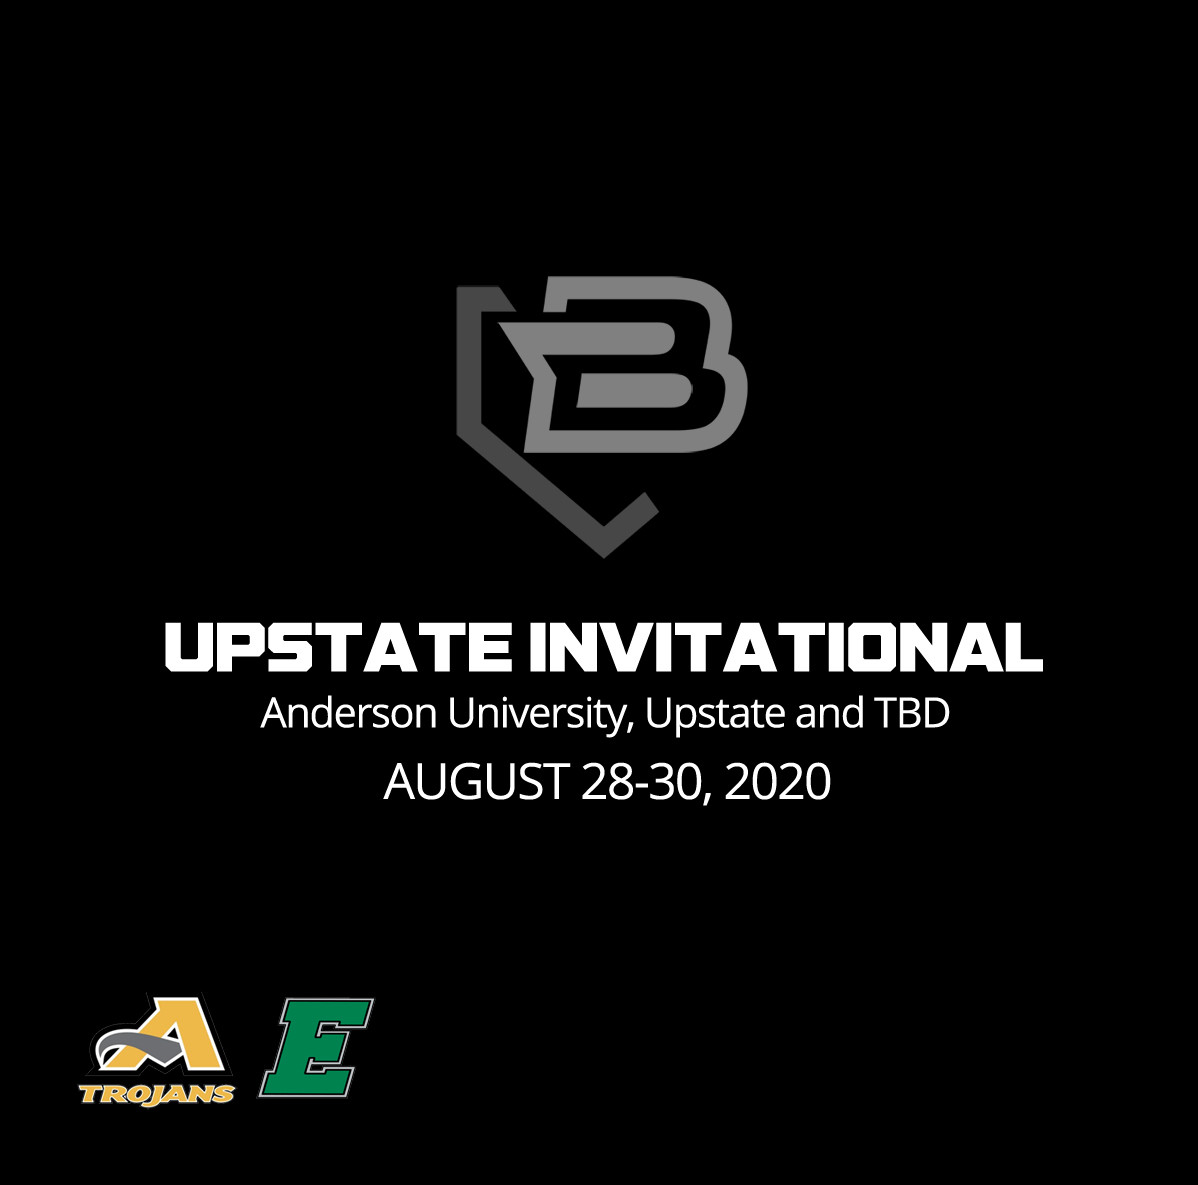 UPSTATE INVITATIONAL